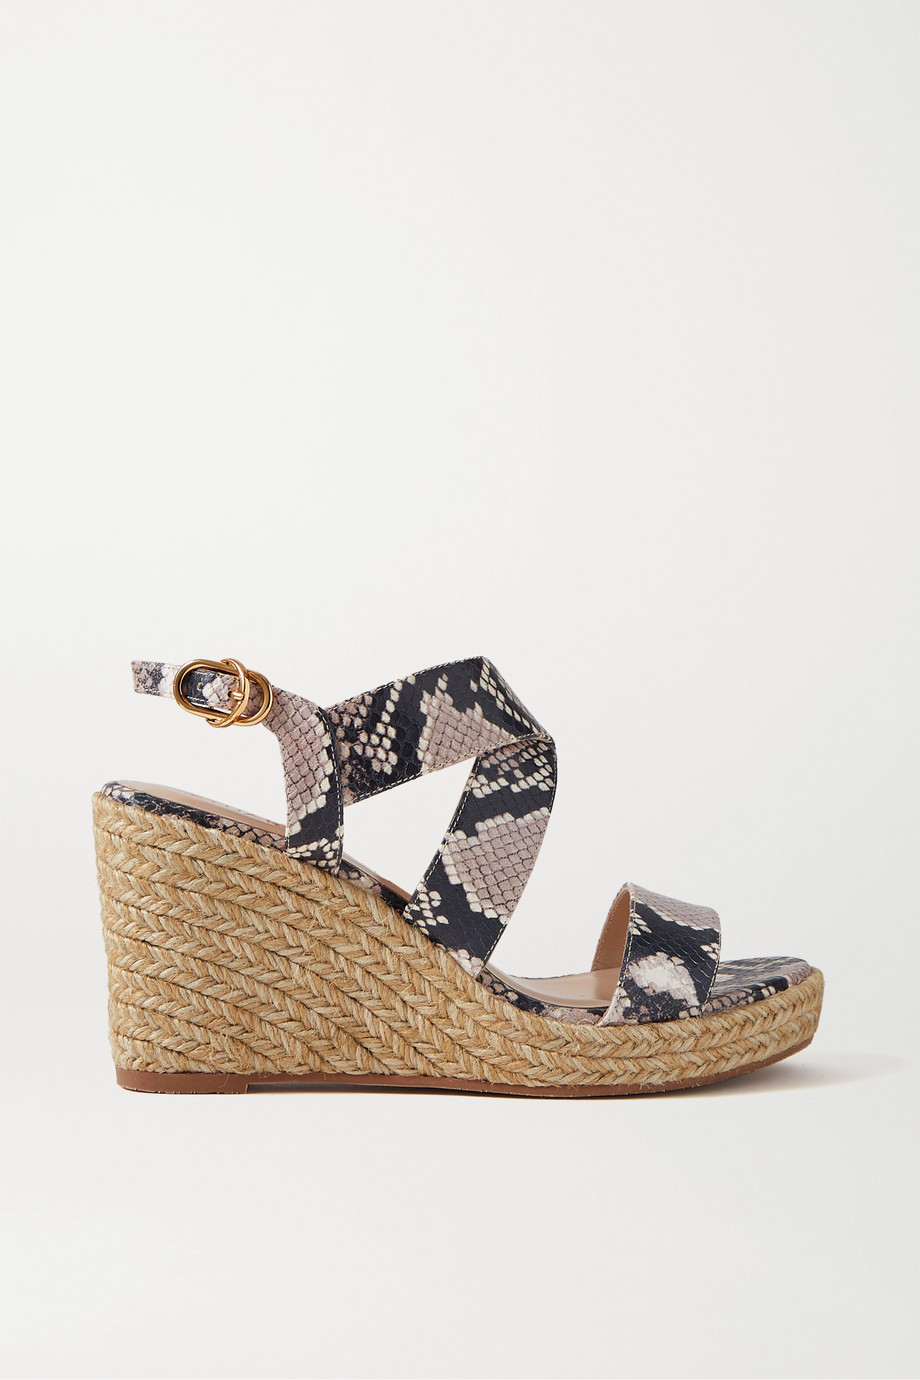 Stuart Weitzman Ellette snake-effect leather espadrille wedge sandals